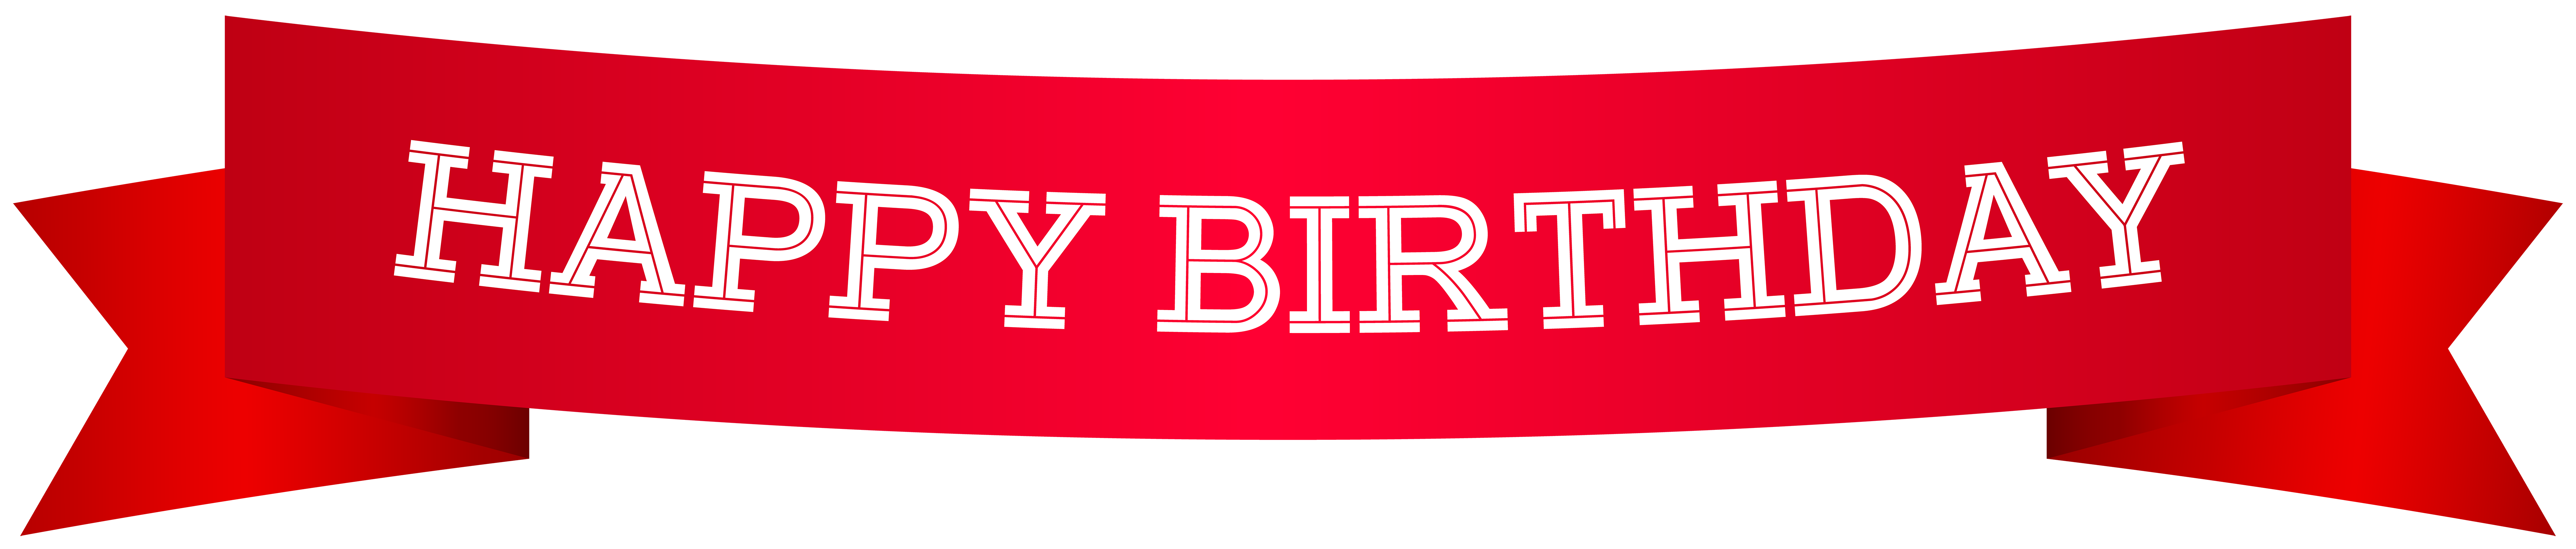 Happy birthday banner png. Red clip art image